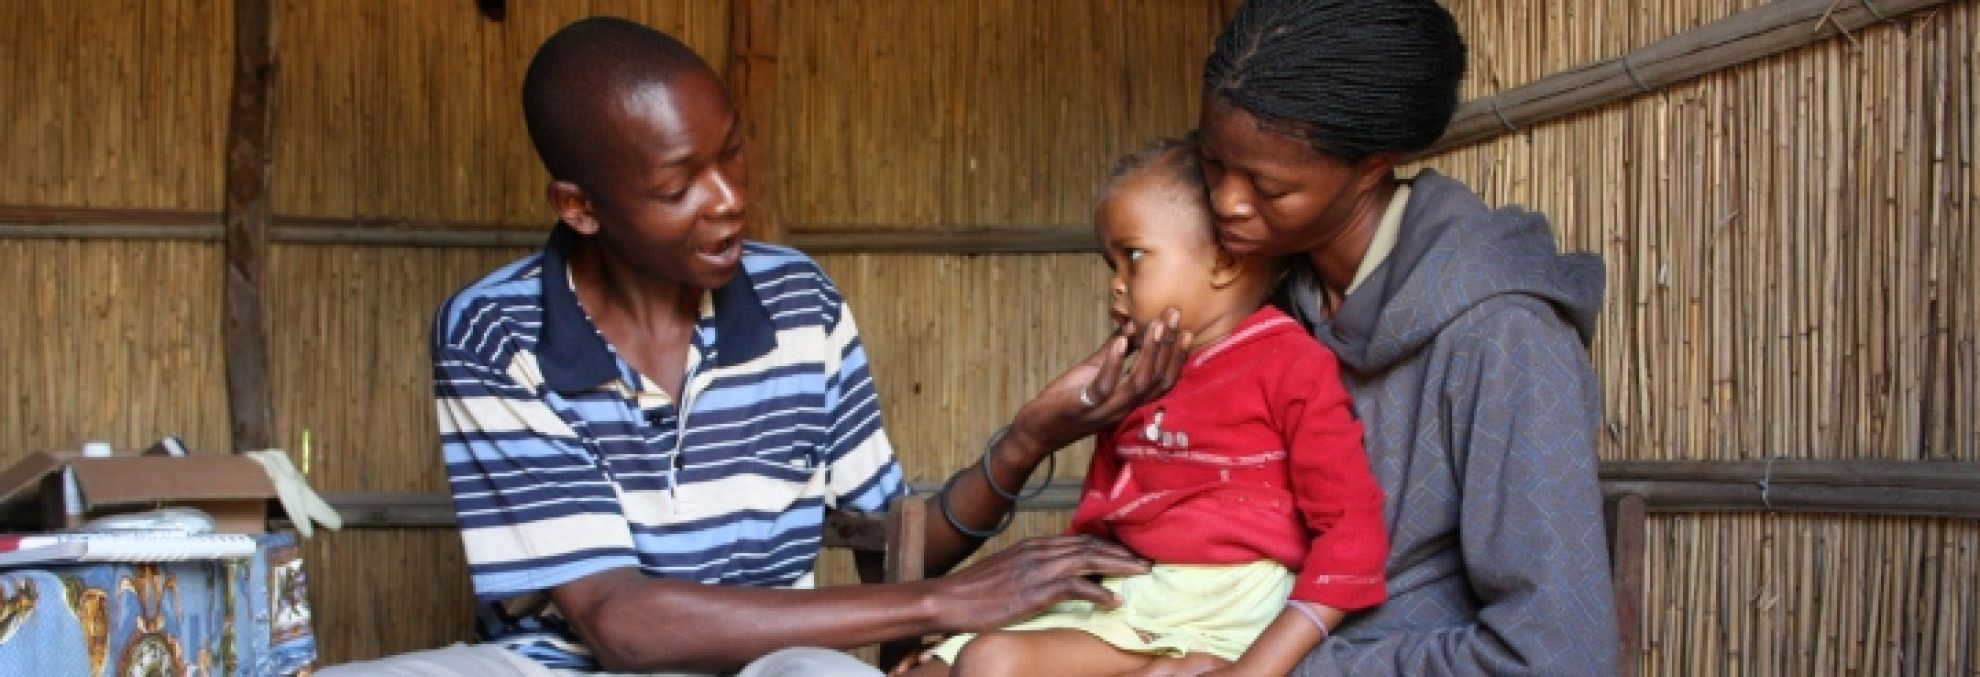 Latest News Malaria consortium calls for urgent and sustained scale up of iccm to meet mdgs